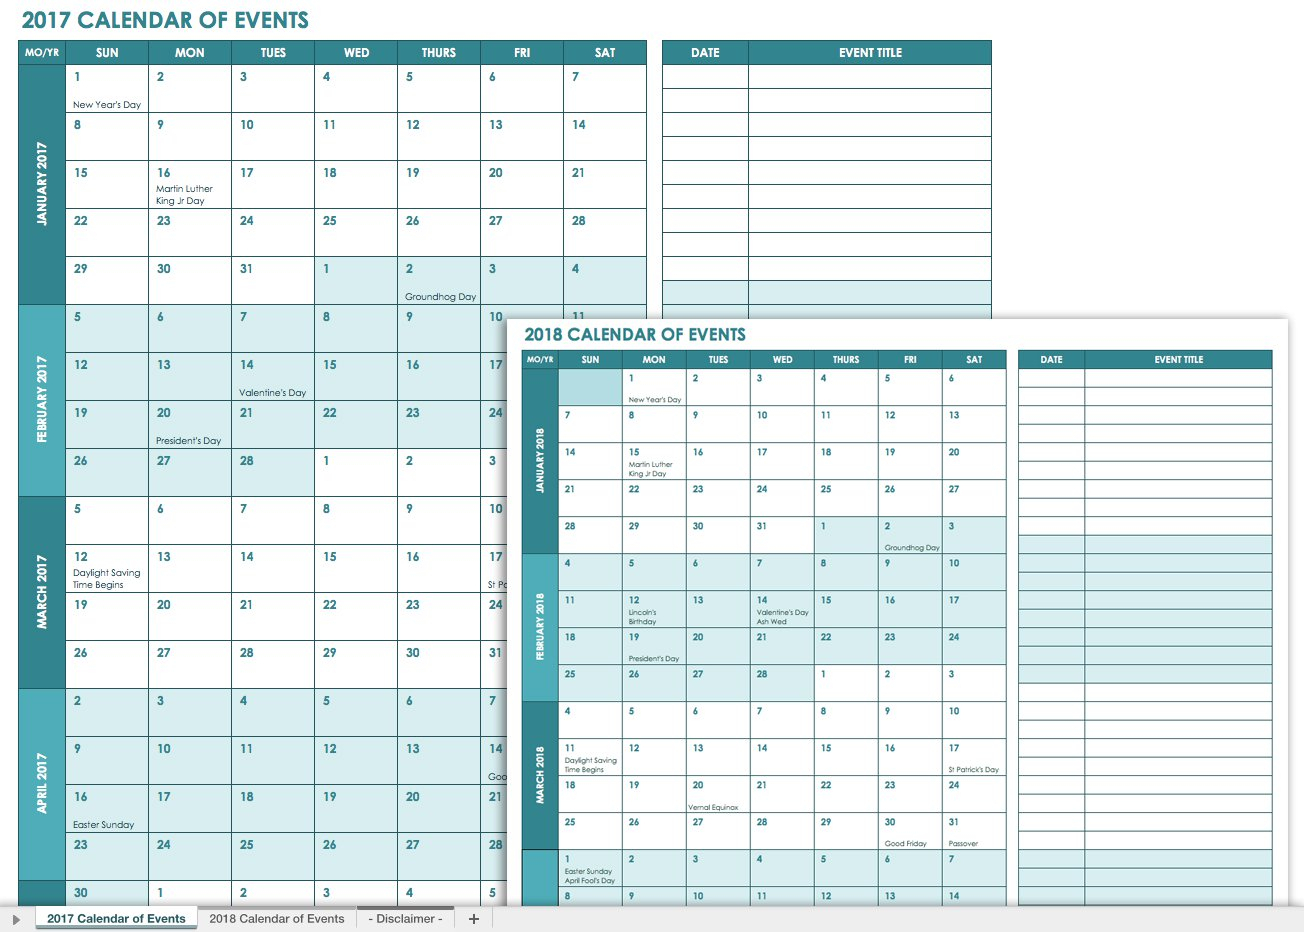 21 Free Event Planning Templates | Smartsheet with regard to Calendar Of Events Template Free